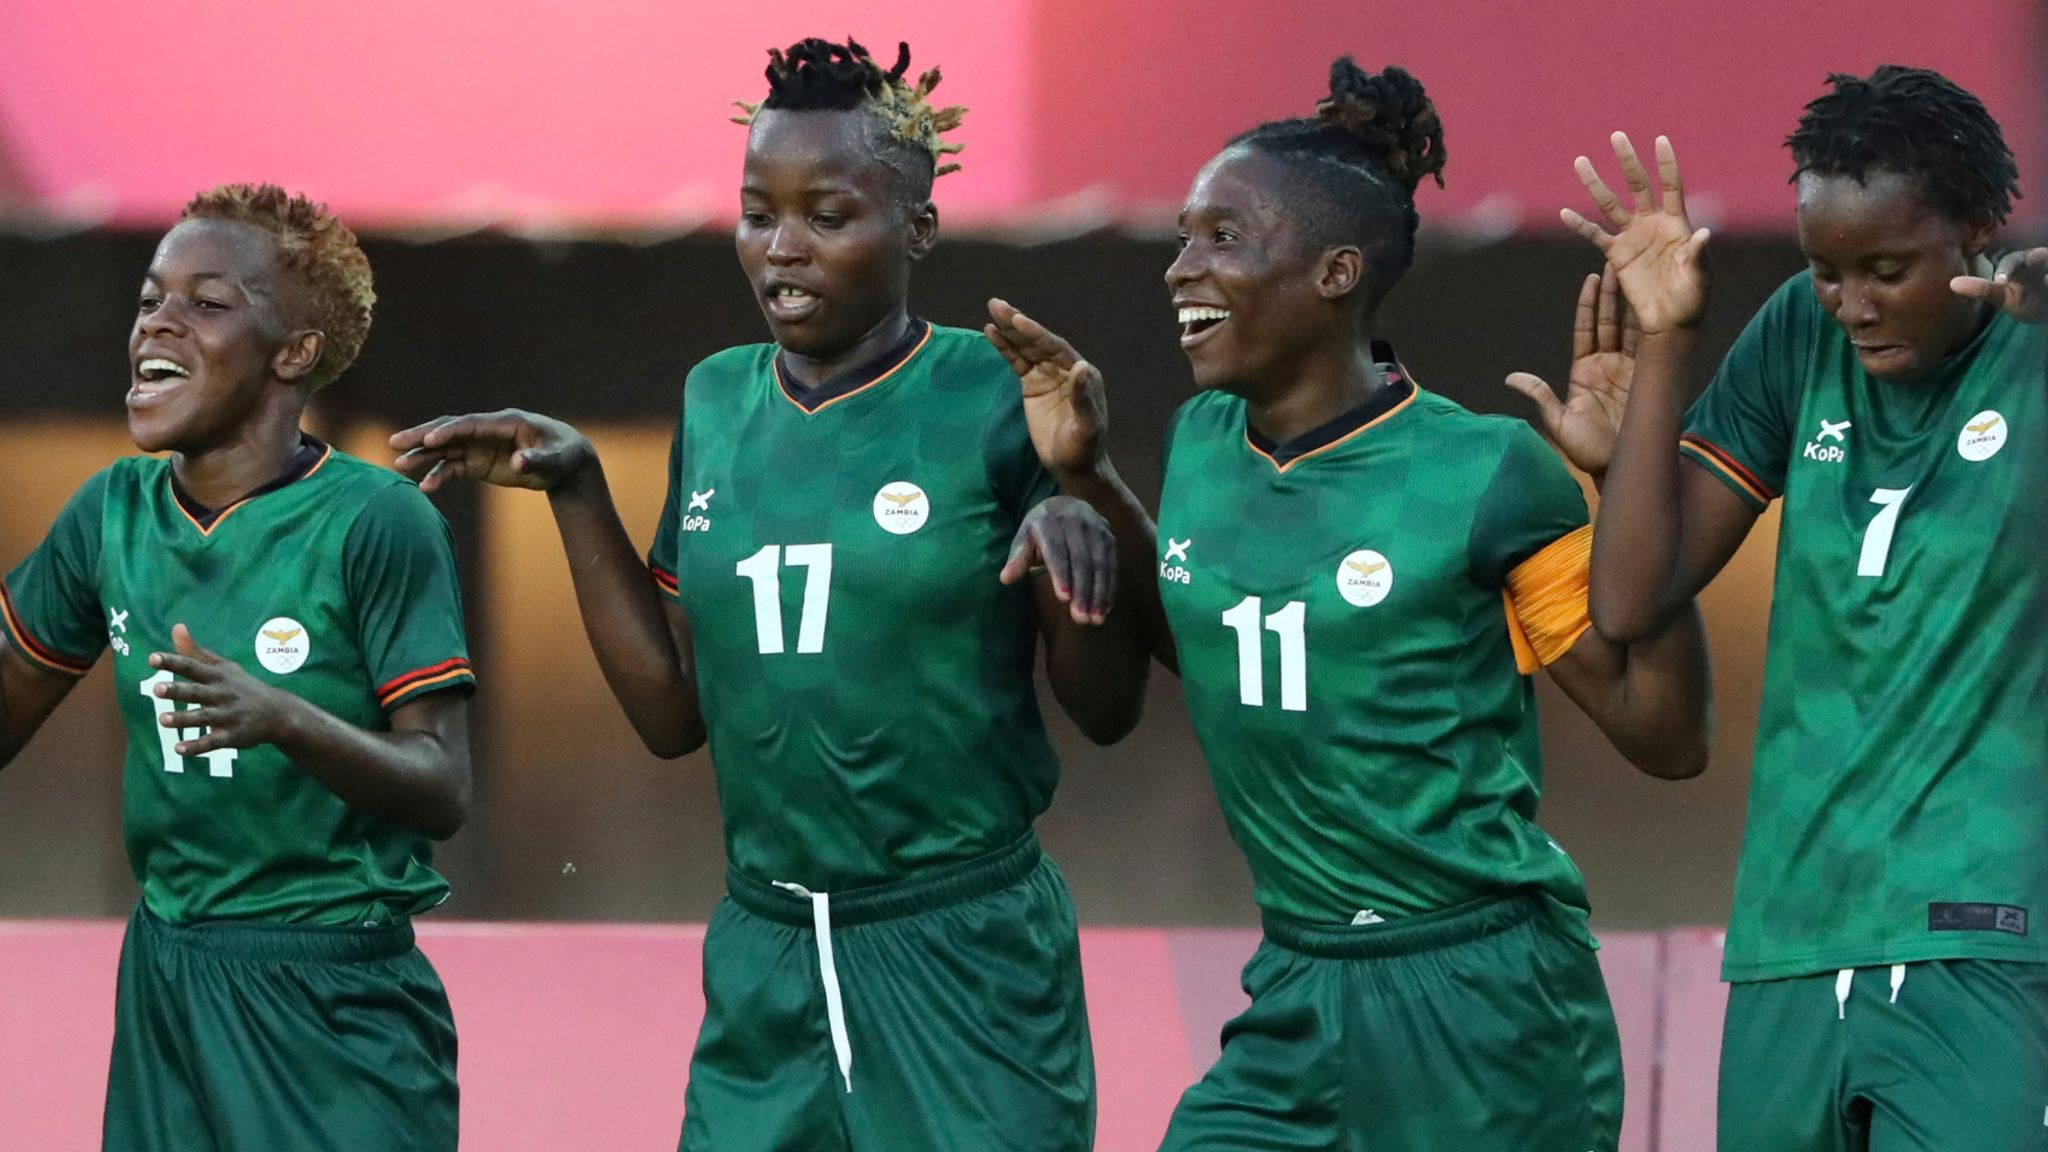 Zambia's Barbra Banda nets another hat-trick in Tokyo 2020 thriller against  China - Women's Olympic football round-up | Football News | Sky Sports